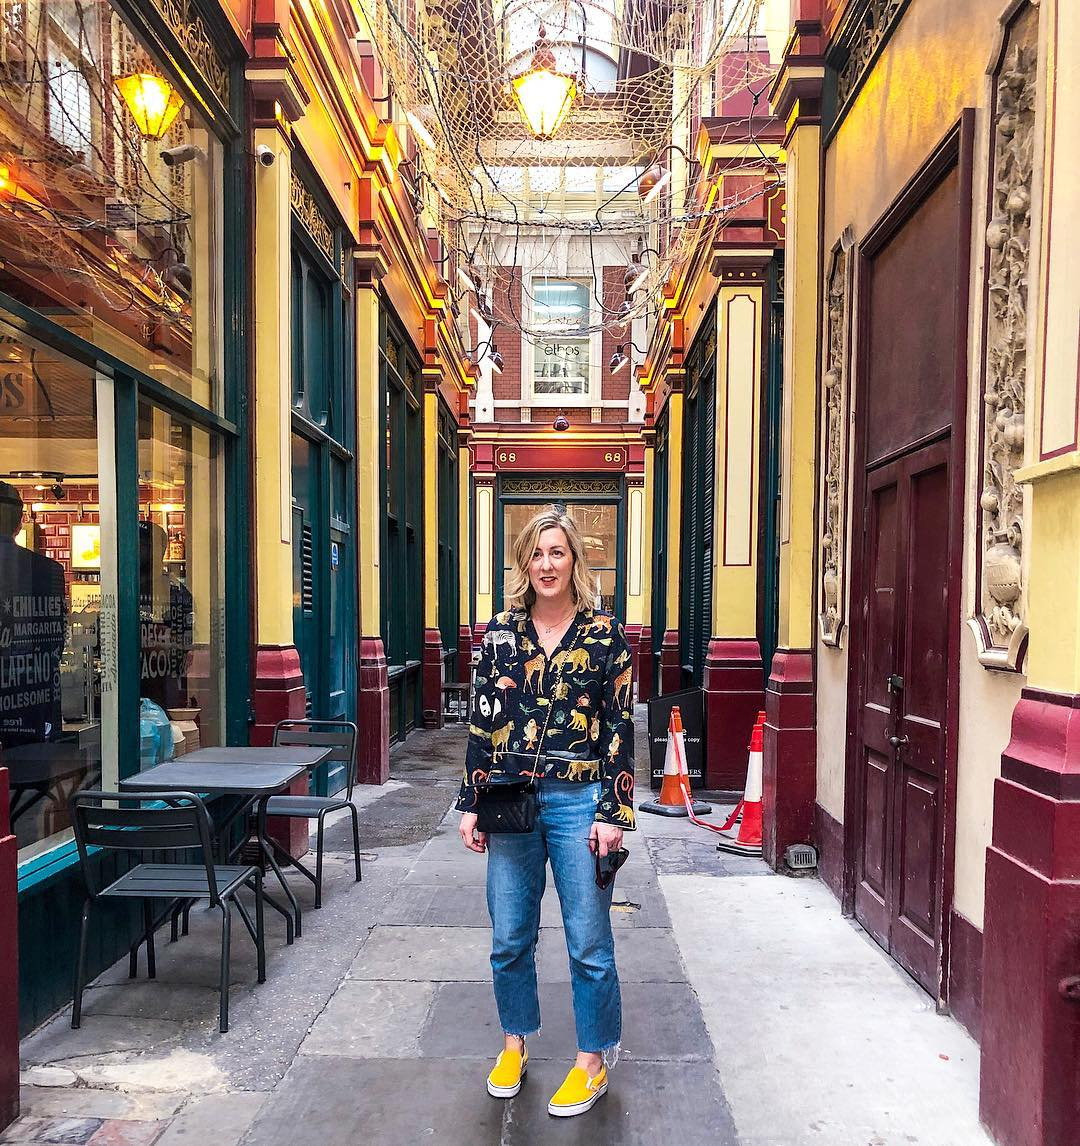 Just popped out for a new Nimbus 2000… Potter fans, Fun fact for you, Leadenhall Market in the City was the location for the entrance to Diagon Alley. Pretty sure they cleared the traffic cones away for that scene . . . Shirt @zara Bag @chanelofficial  Jeans @riverisland  Shoes @vans_europe